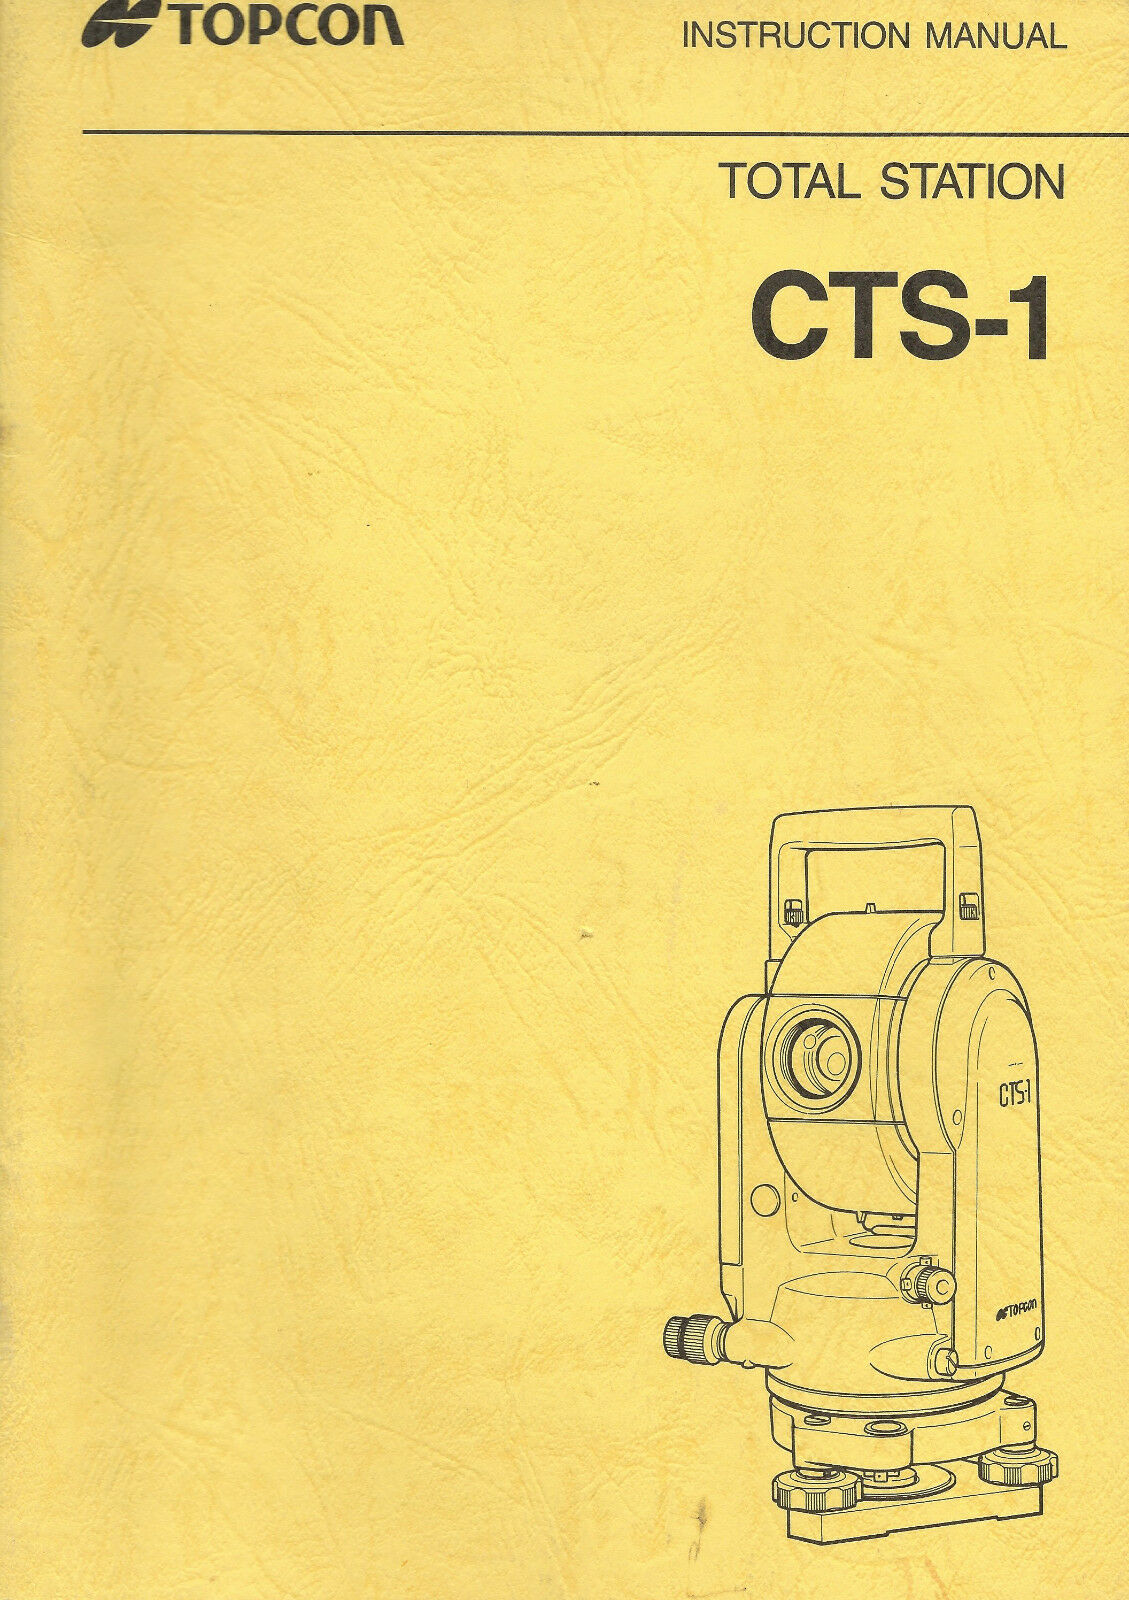 New Topcon Total Station CTS 1 Instruction Manual